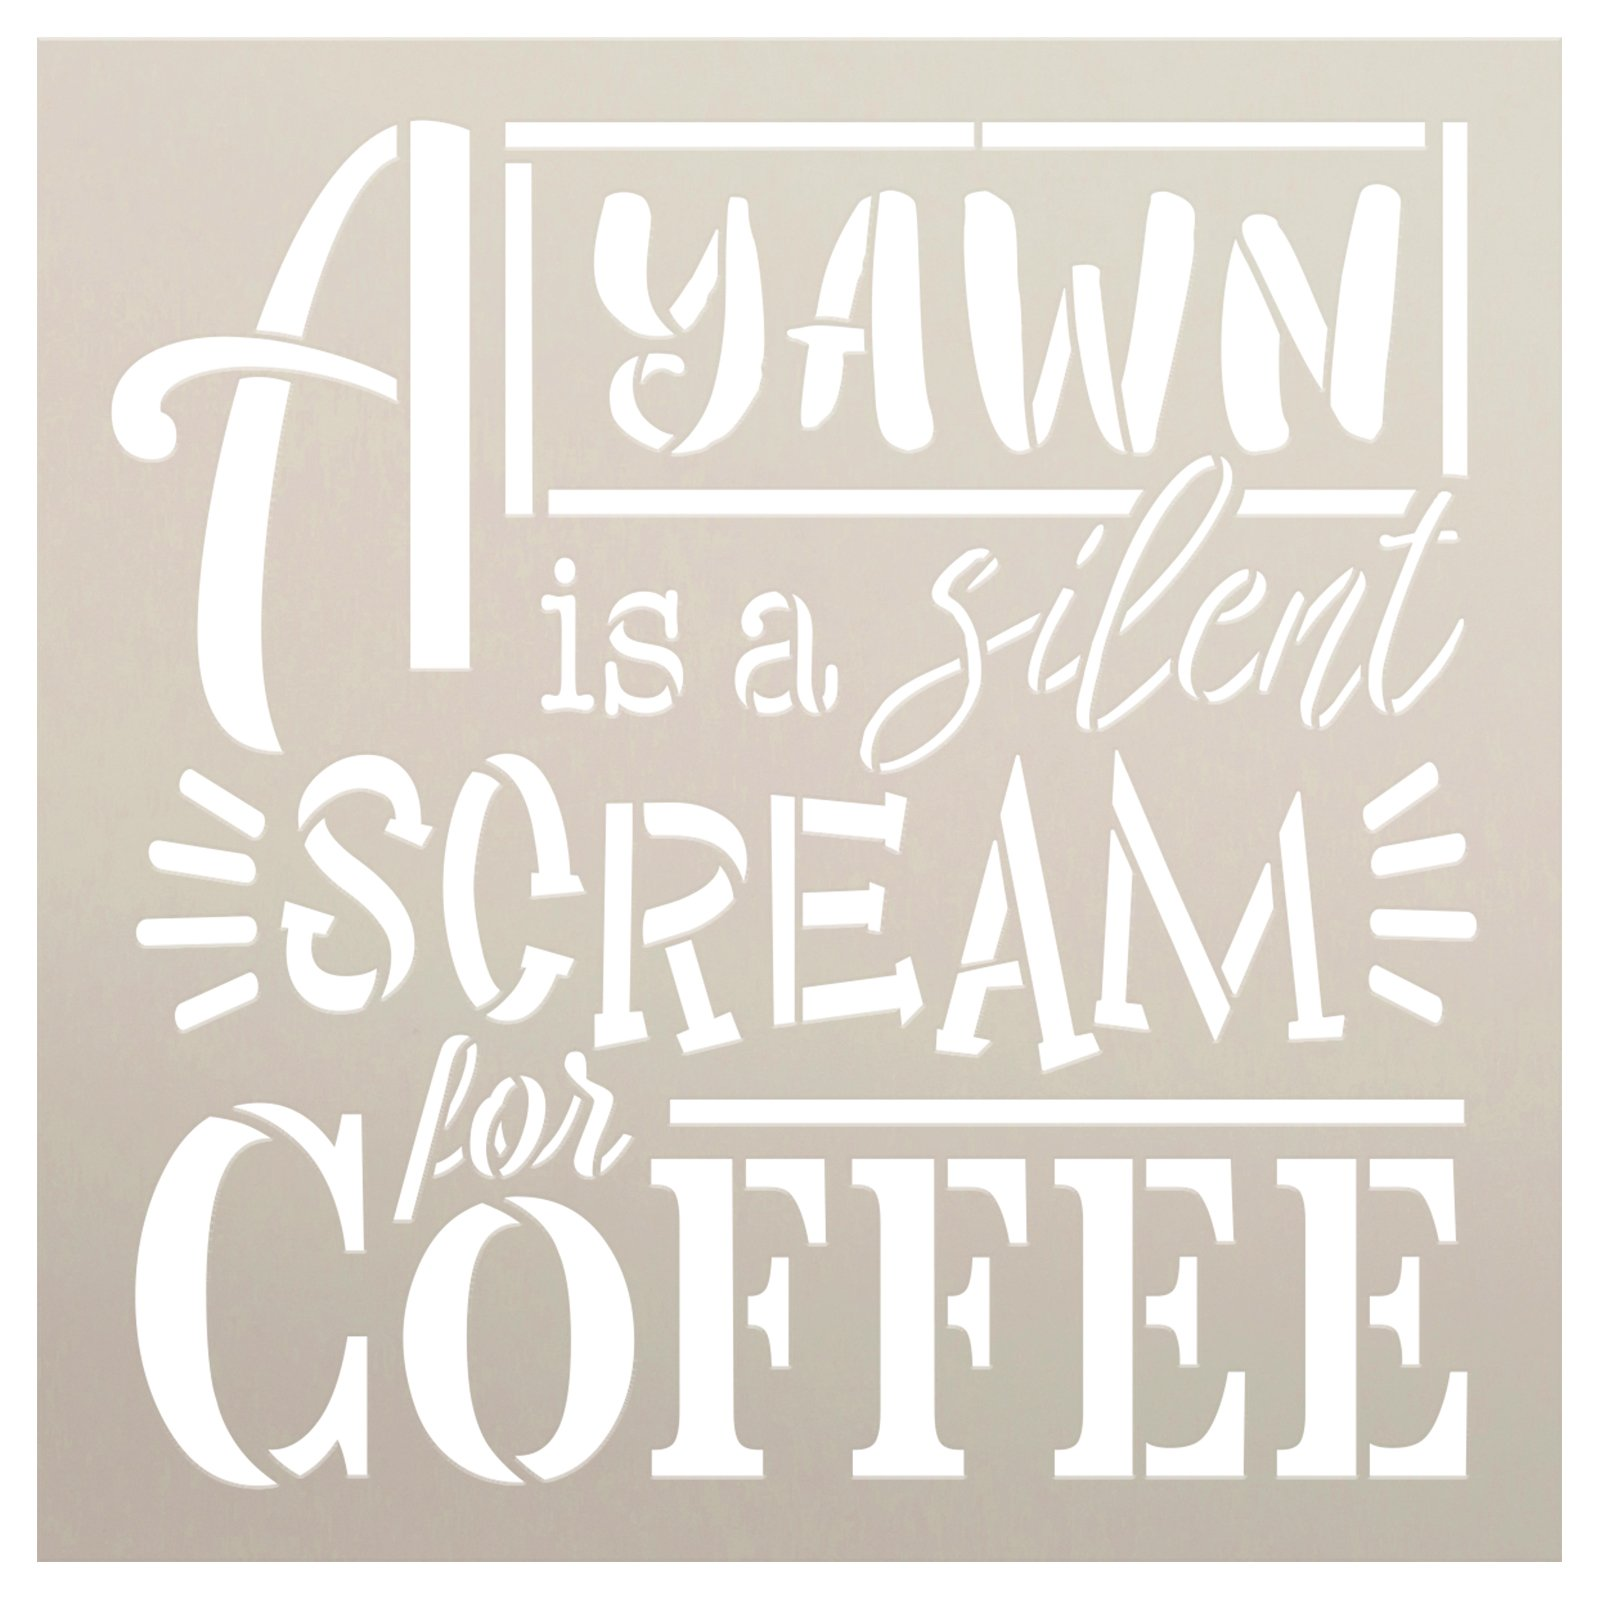 Yawn - Silent Scream for Coffee Stencil by StudioR12 | Craft DIY Kitchen Cafe Home Decor | Paint Wood Sign | Reusable Mylar Template | Select Size